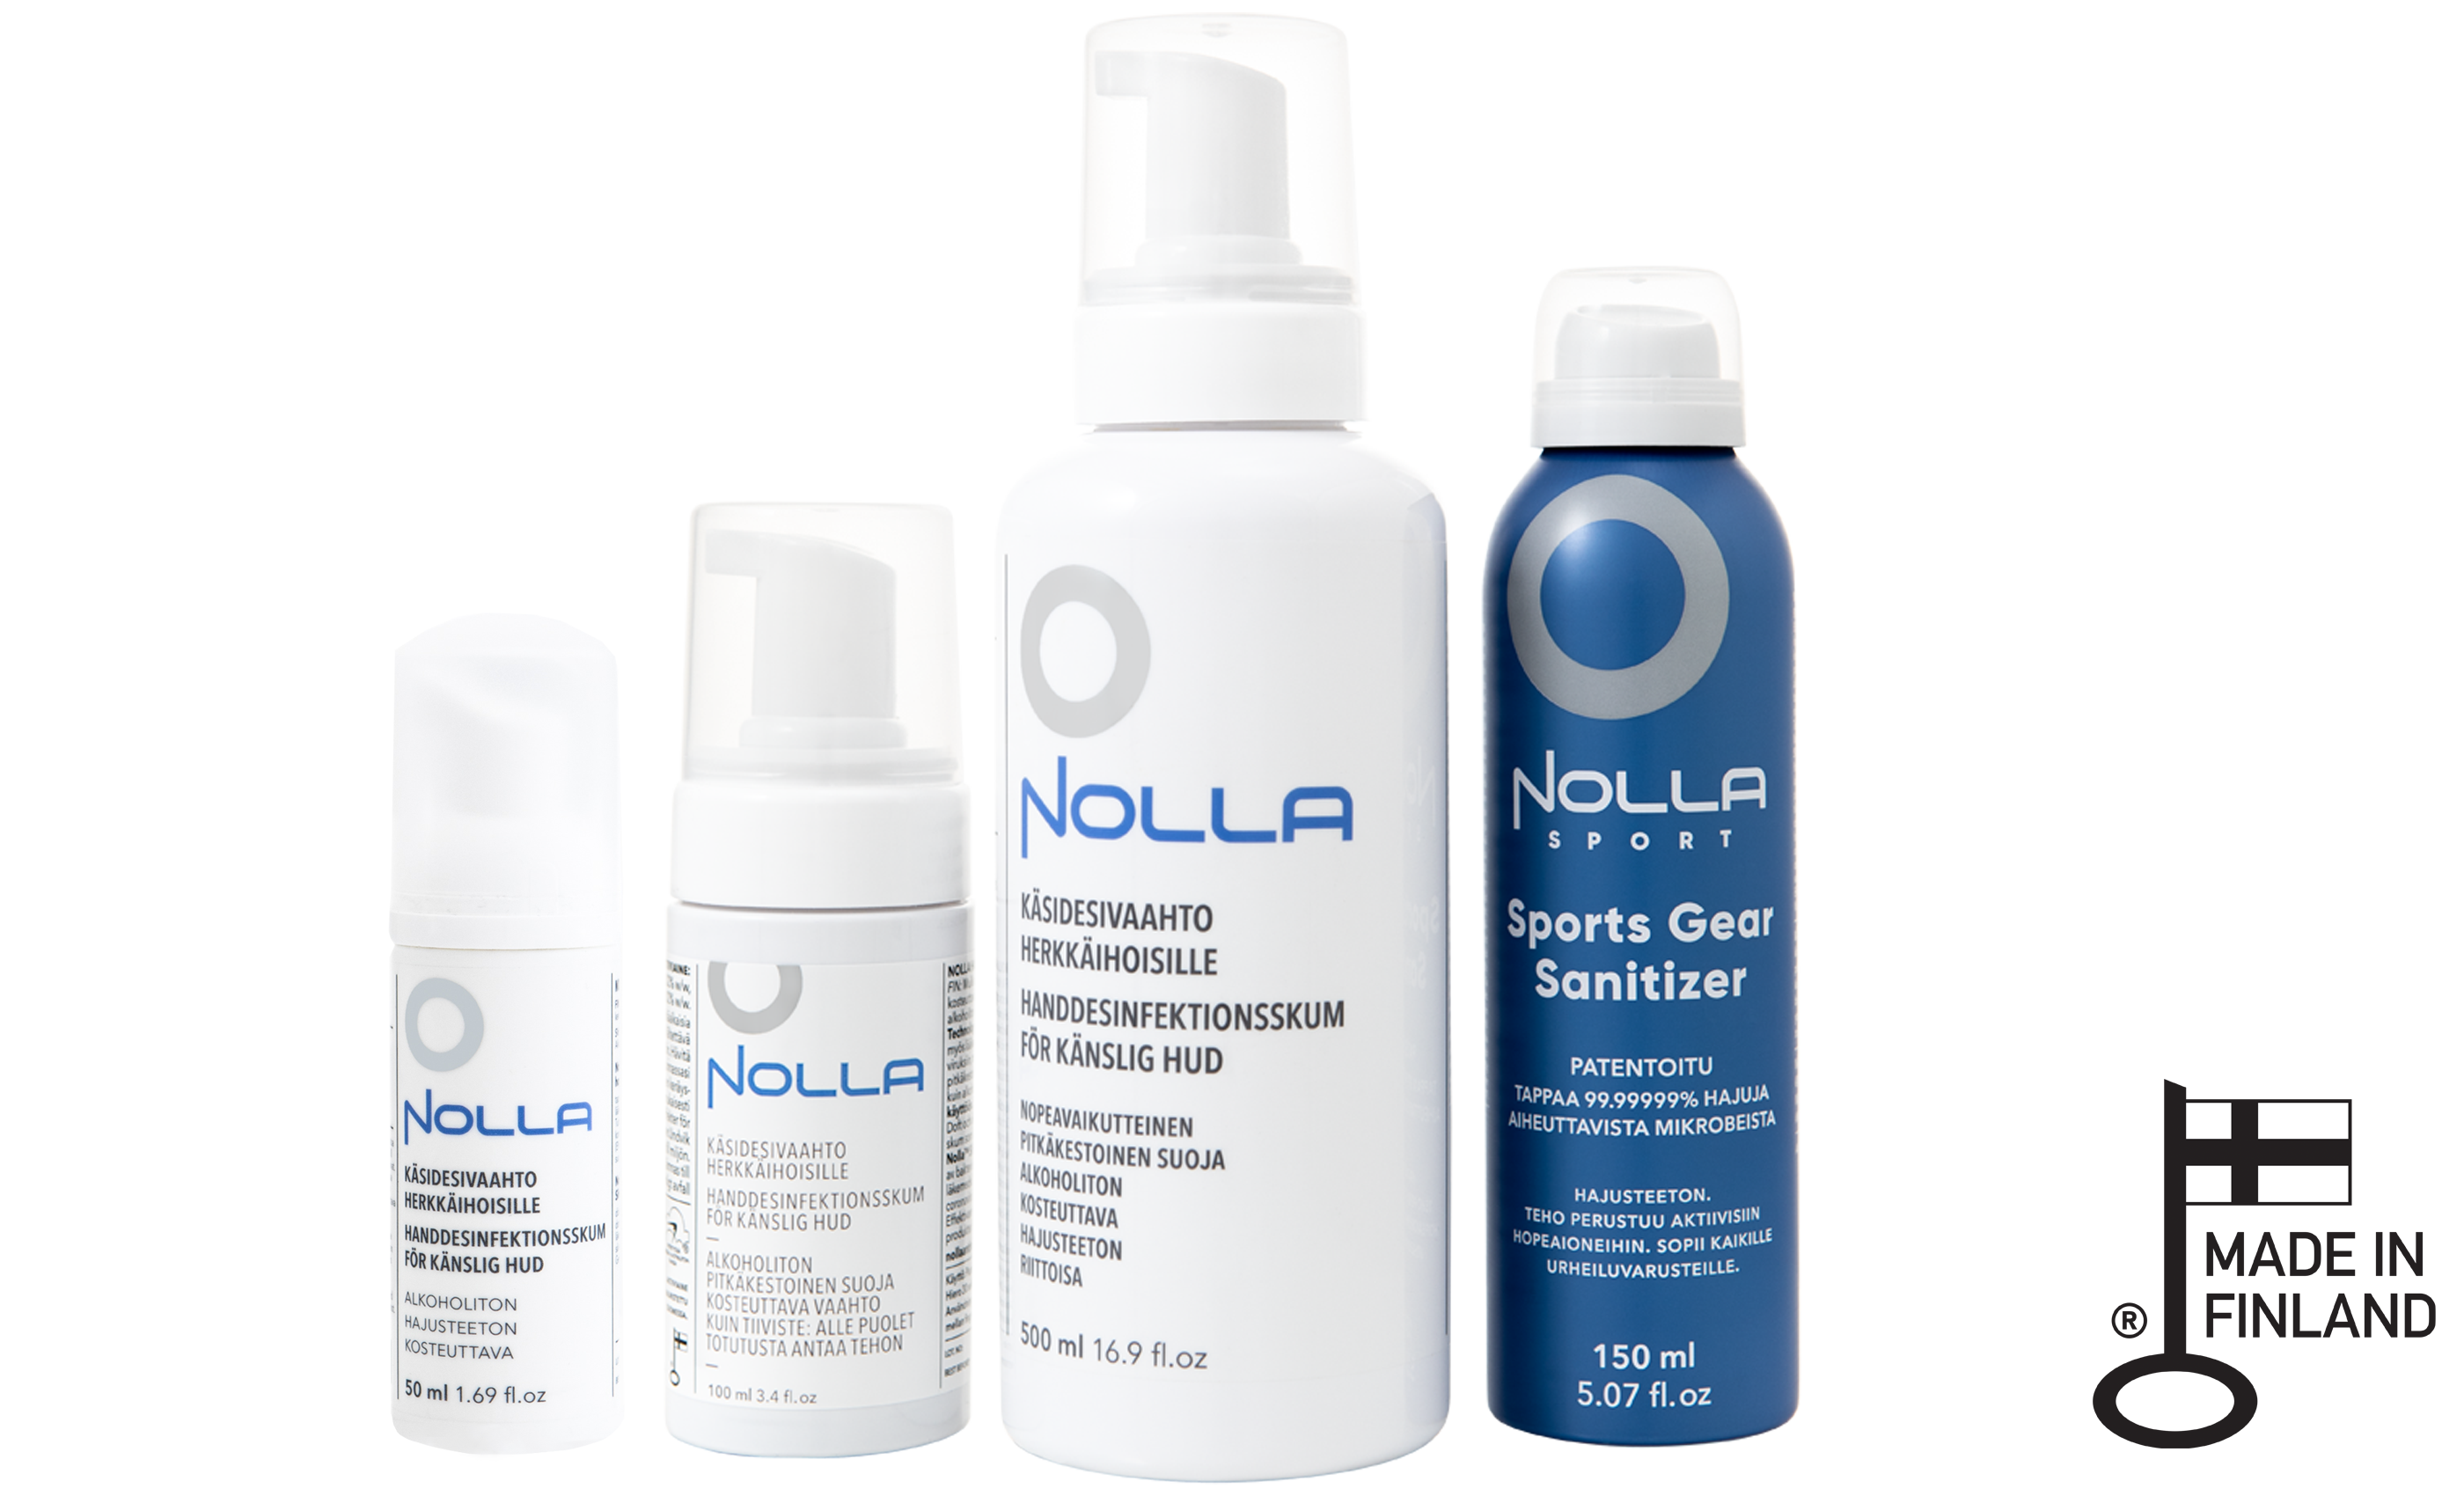 Nolla Antimicrobial products have Key Flag Symbol